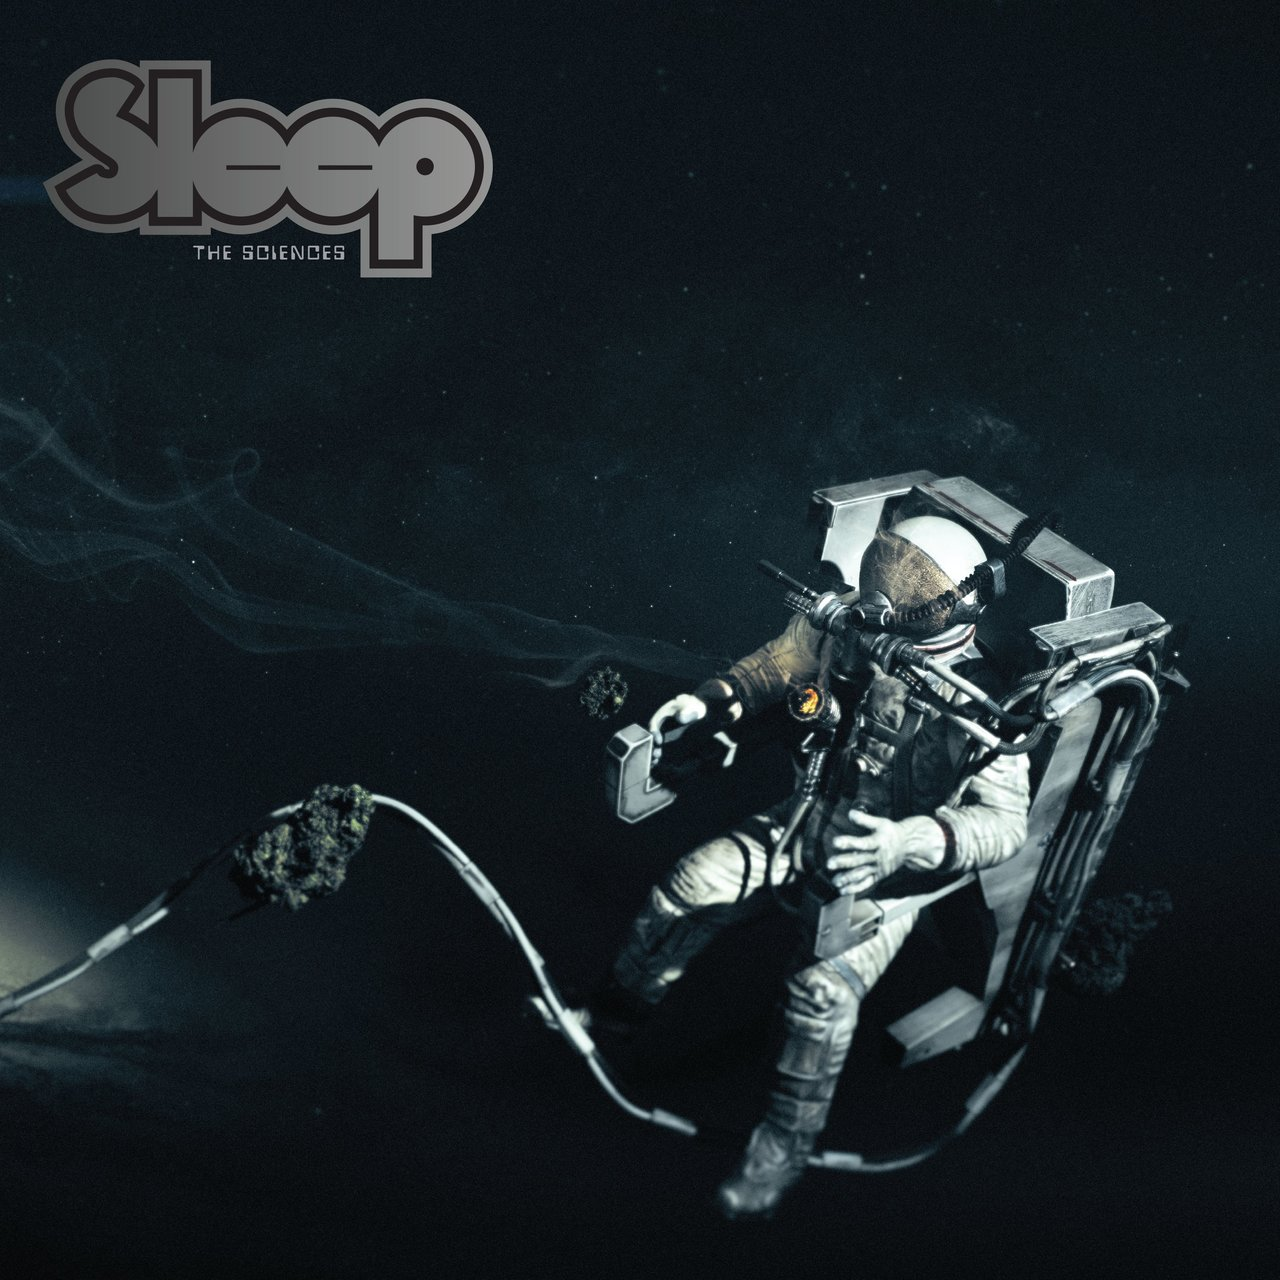 Sleep - The Sciences (2018) [FLAC]